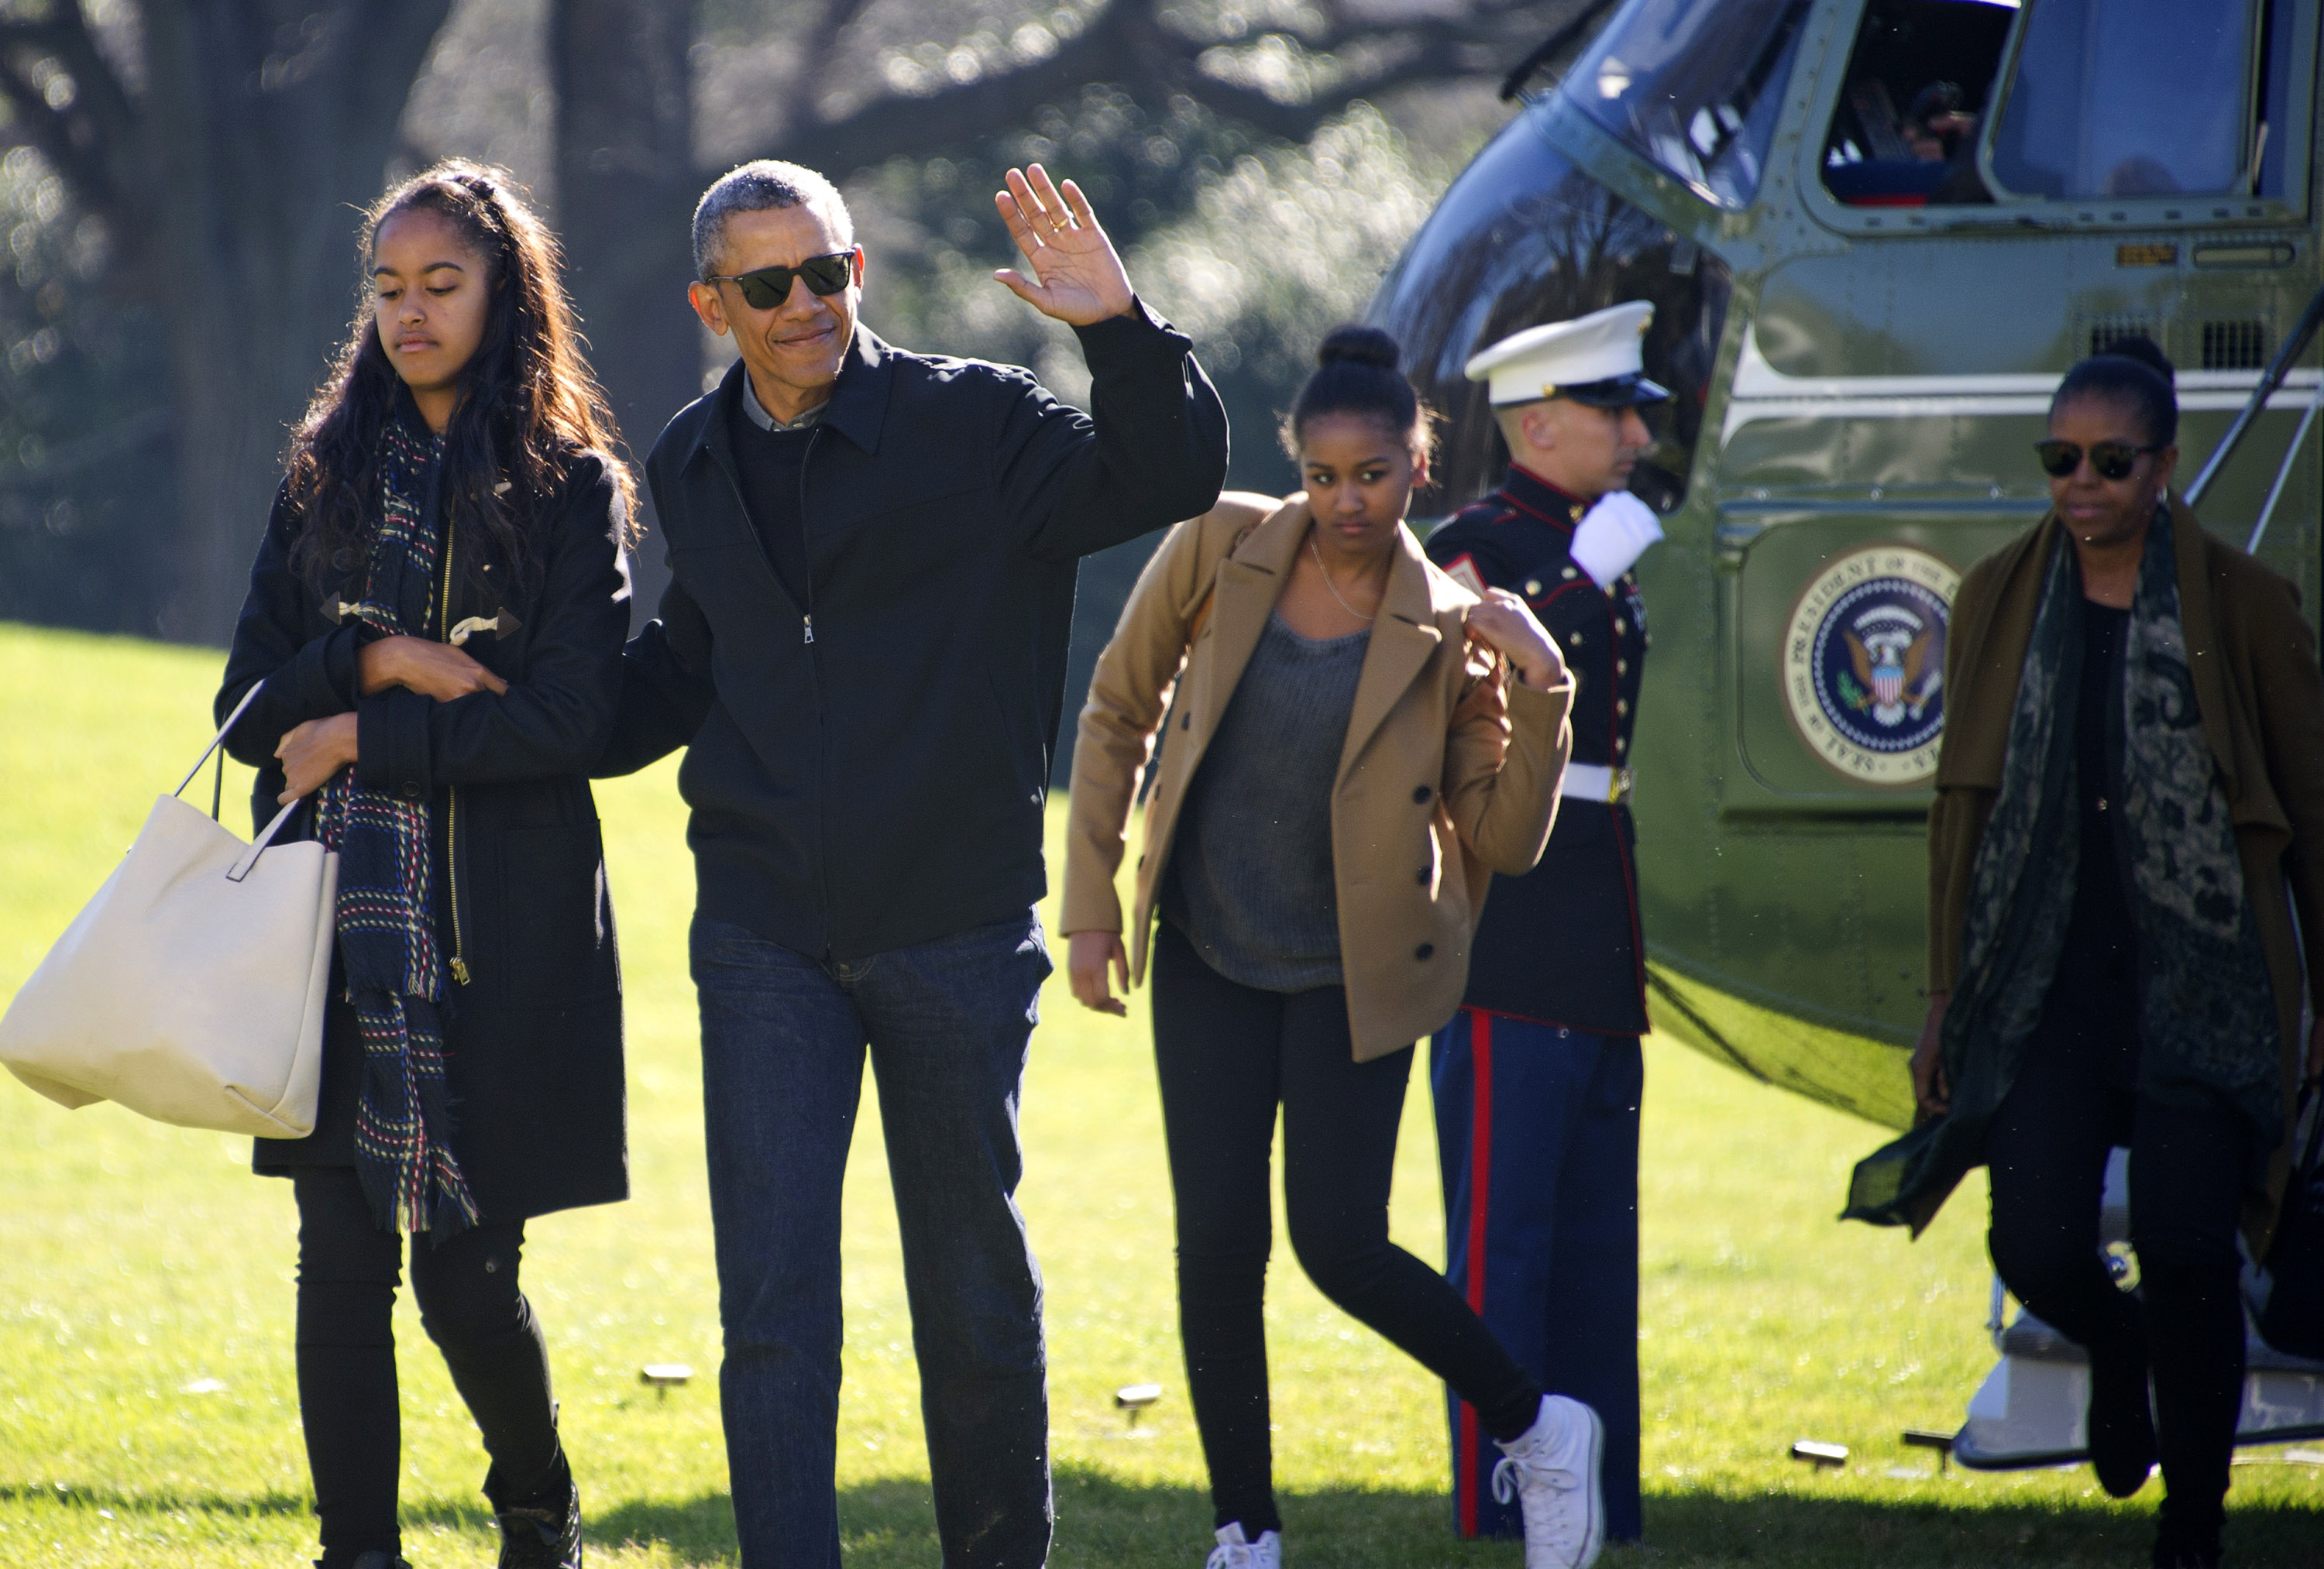 US President Barack Obama and his family (L-R) Malia, Sasha, and first lady Michelle Obama return to the South Lawn of the White HouseJanuary 3, 2016 in Washington, DC. The first family is returning from their two-week Hawaiian vacation. (Getty Images)